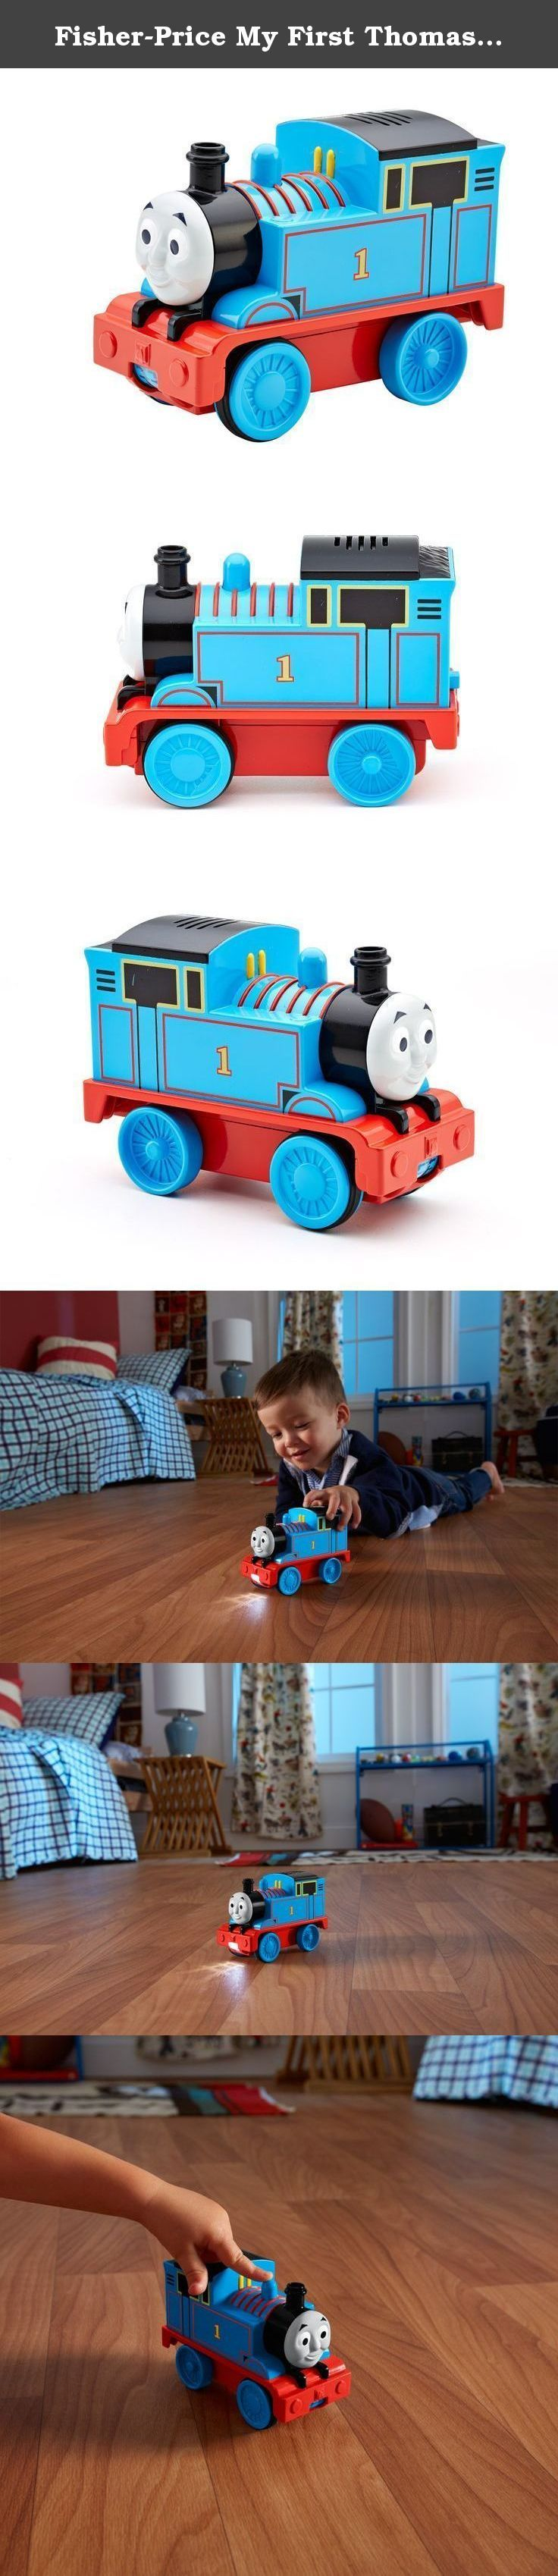 "Fisher-Price My First Thomas the Train Track Projector Thomas. Now Thomas can take the tracks with him wherever he goes! This Thomas toy train from Fisher-Price delivers fun railway play in an innovative way – as toddlers push Thomas along, he'll project ""track"" beneath him, so it looks like he's racing on the rails. In addition to light-up track projection, Thomas will deliver music, sounds and phrases for a fun-filled, interactive playtime experience. Track Projector Thomas can also…"